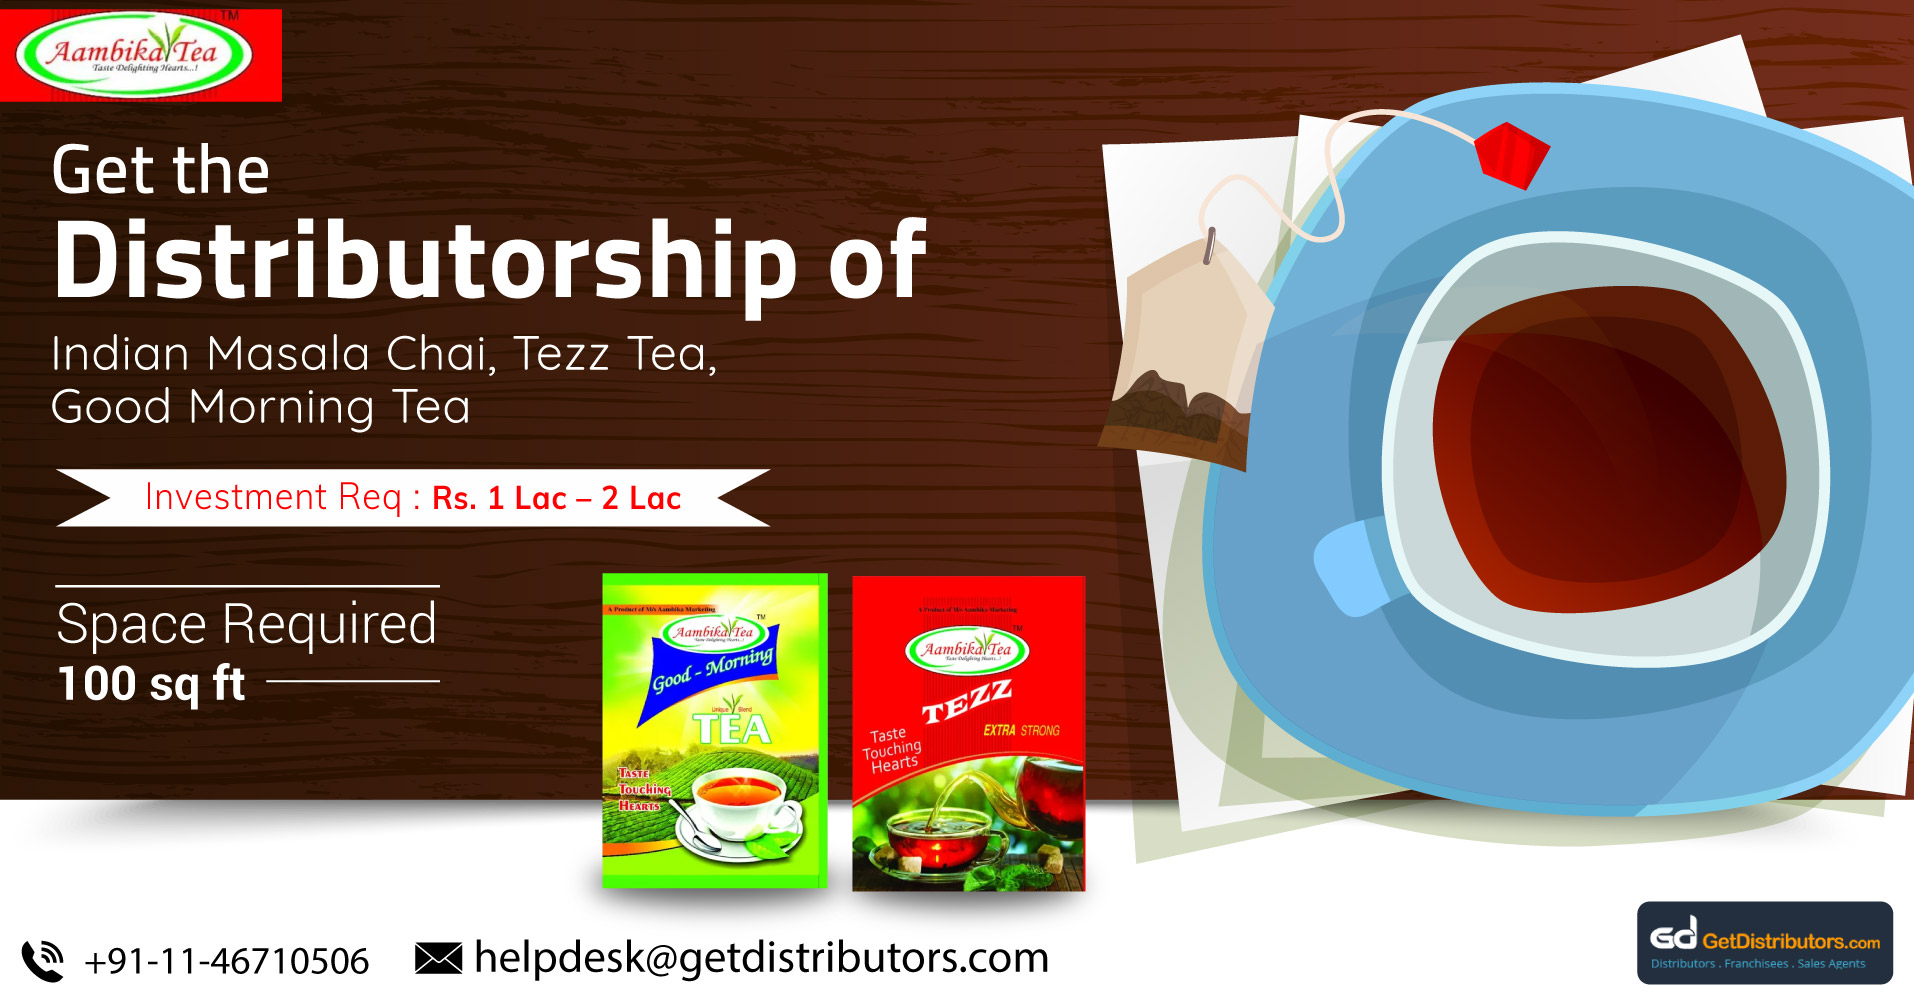 Offering Finest Quality Tea At Pocket-Friendly Rates